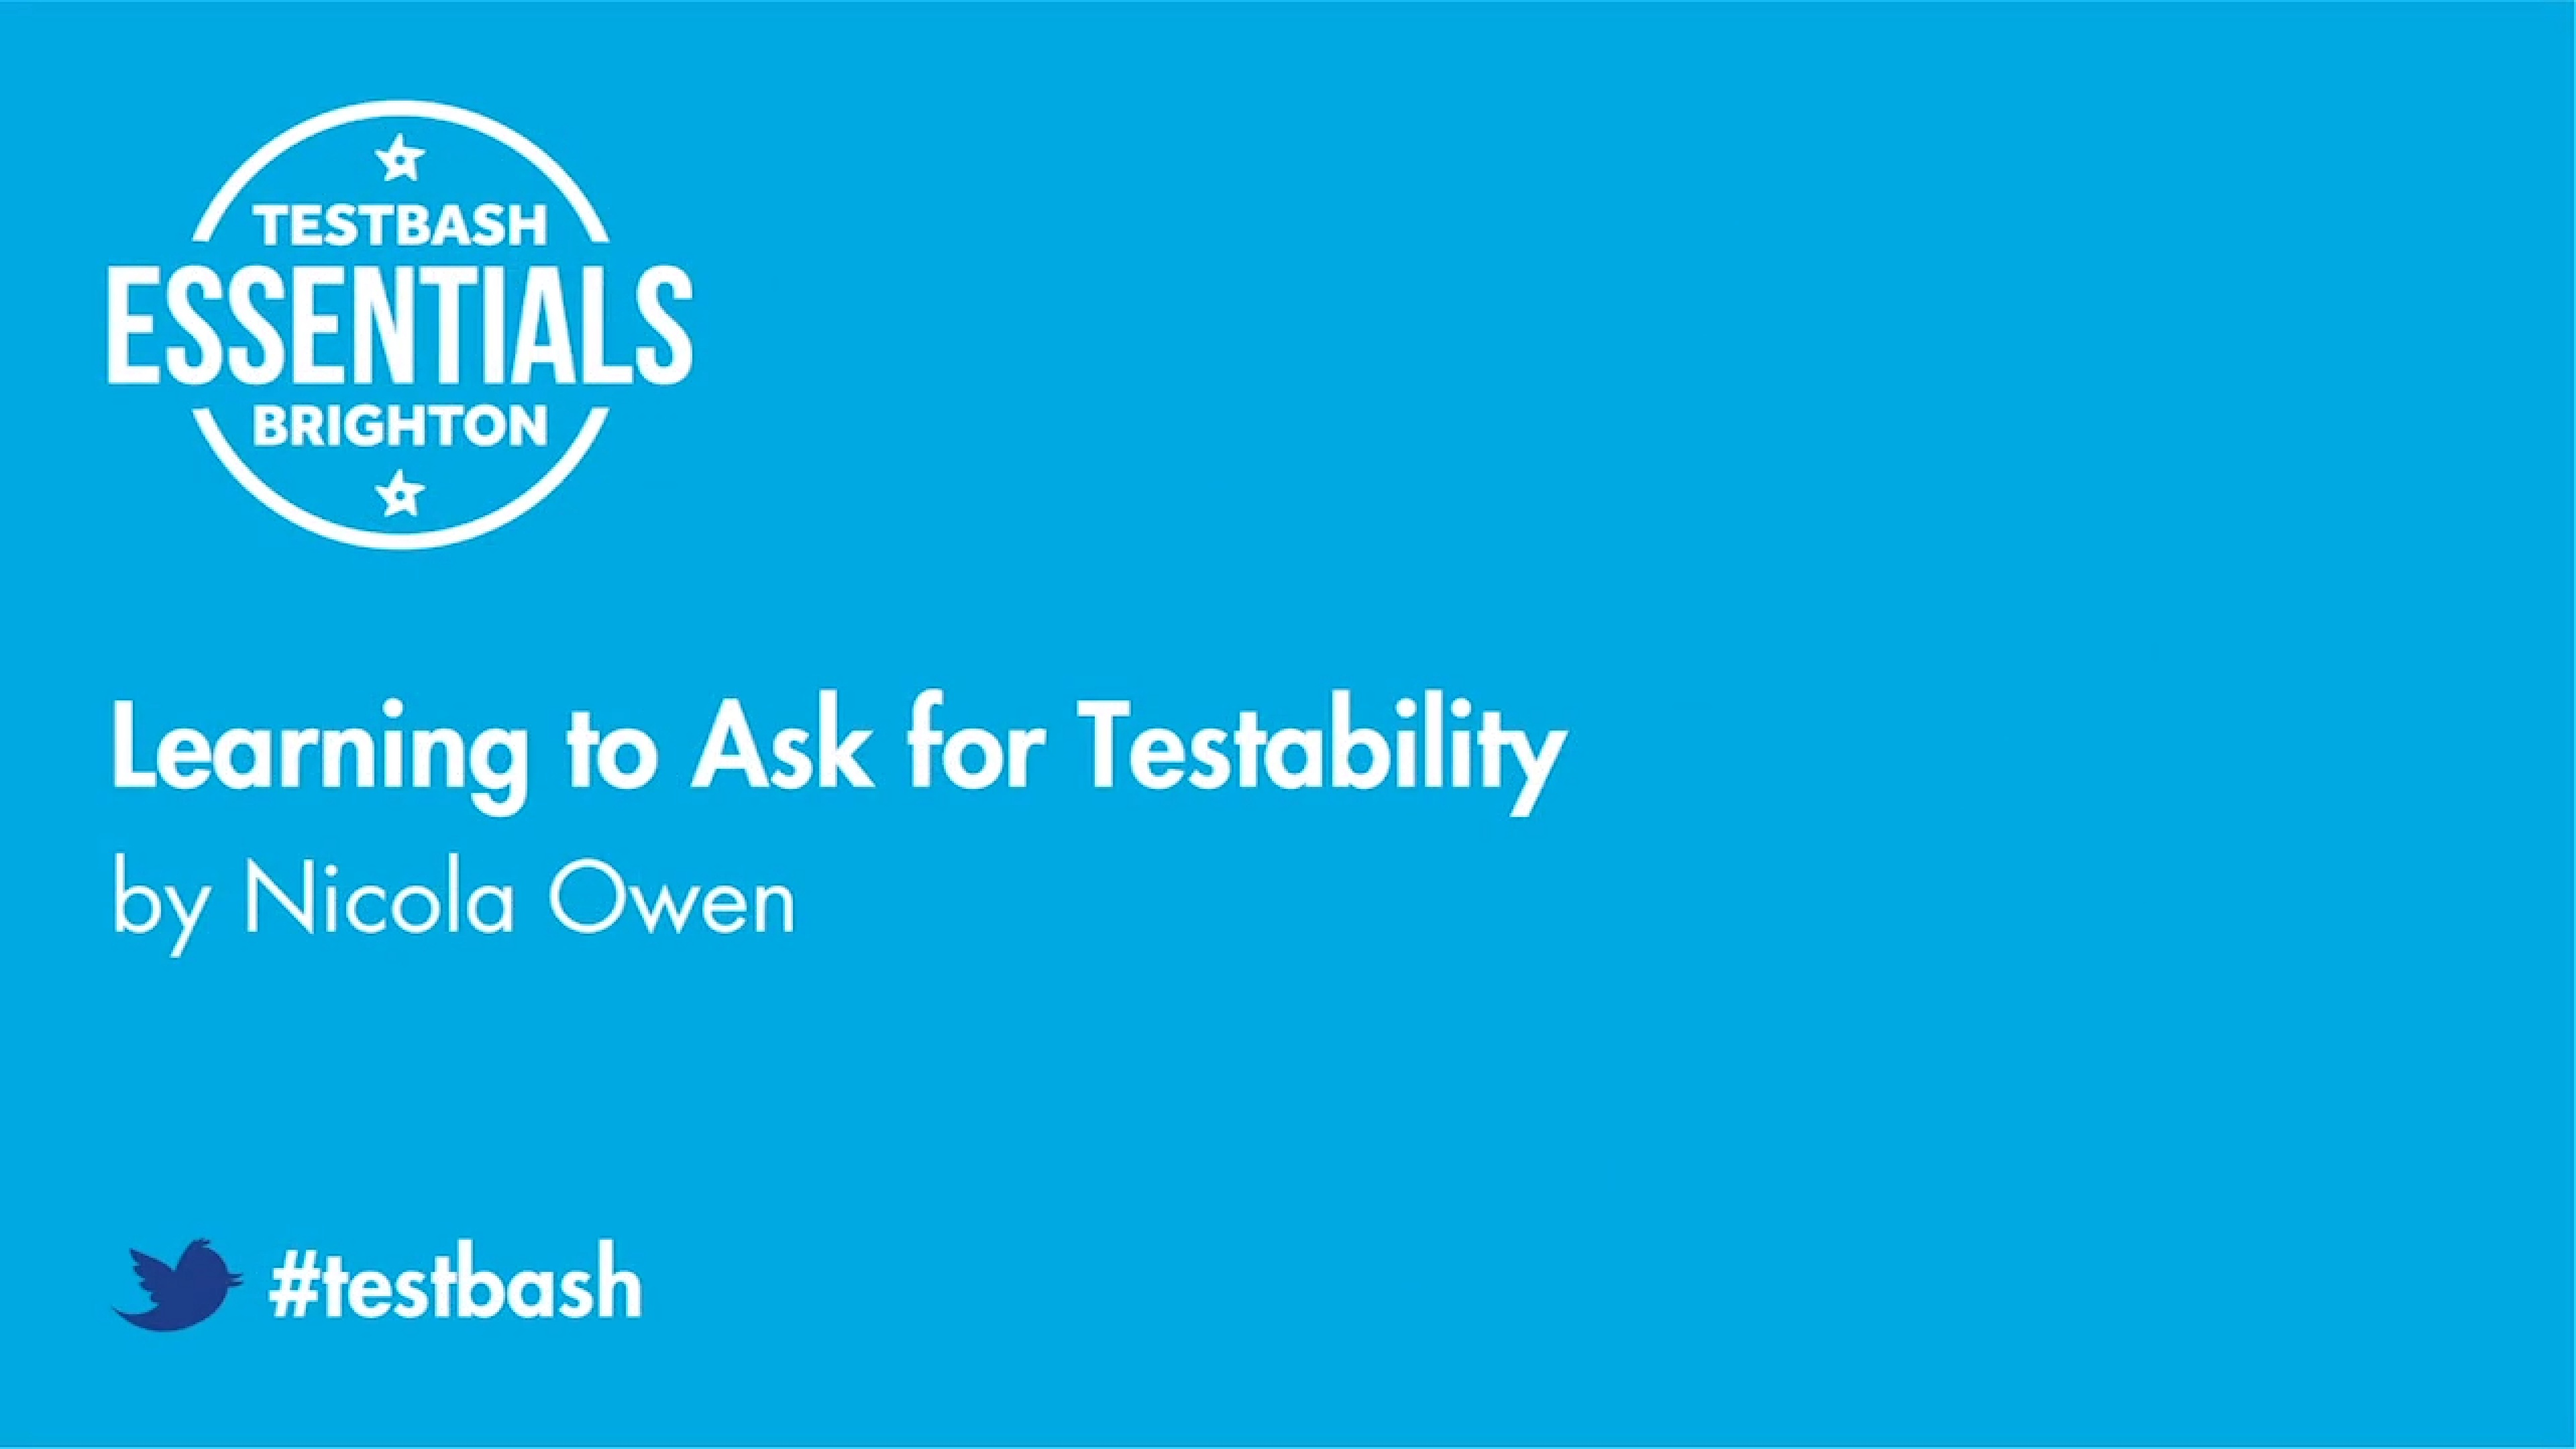 Learning to Ask for Testability - Nicola Owen